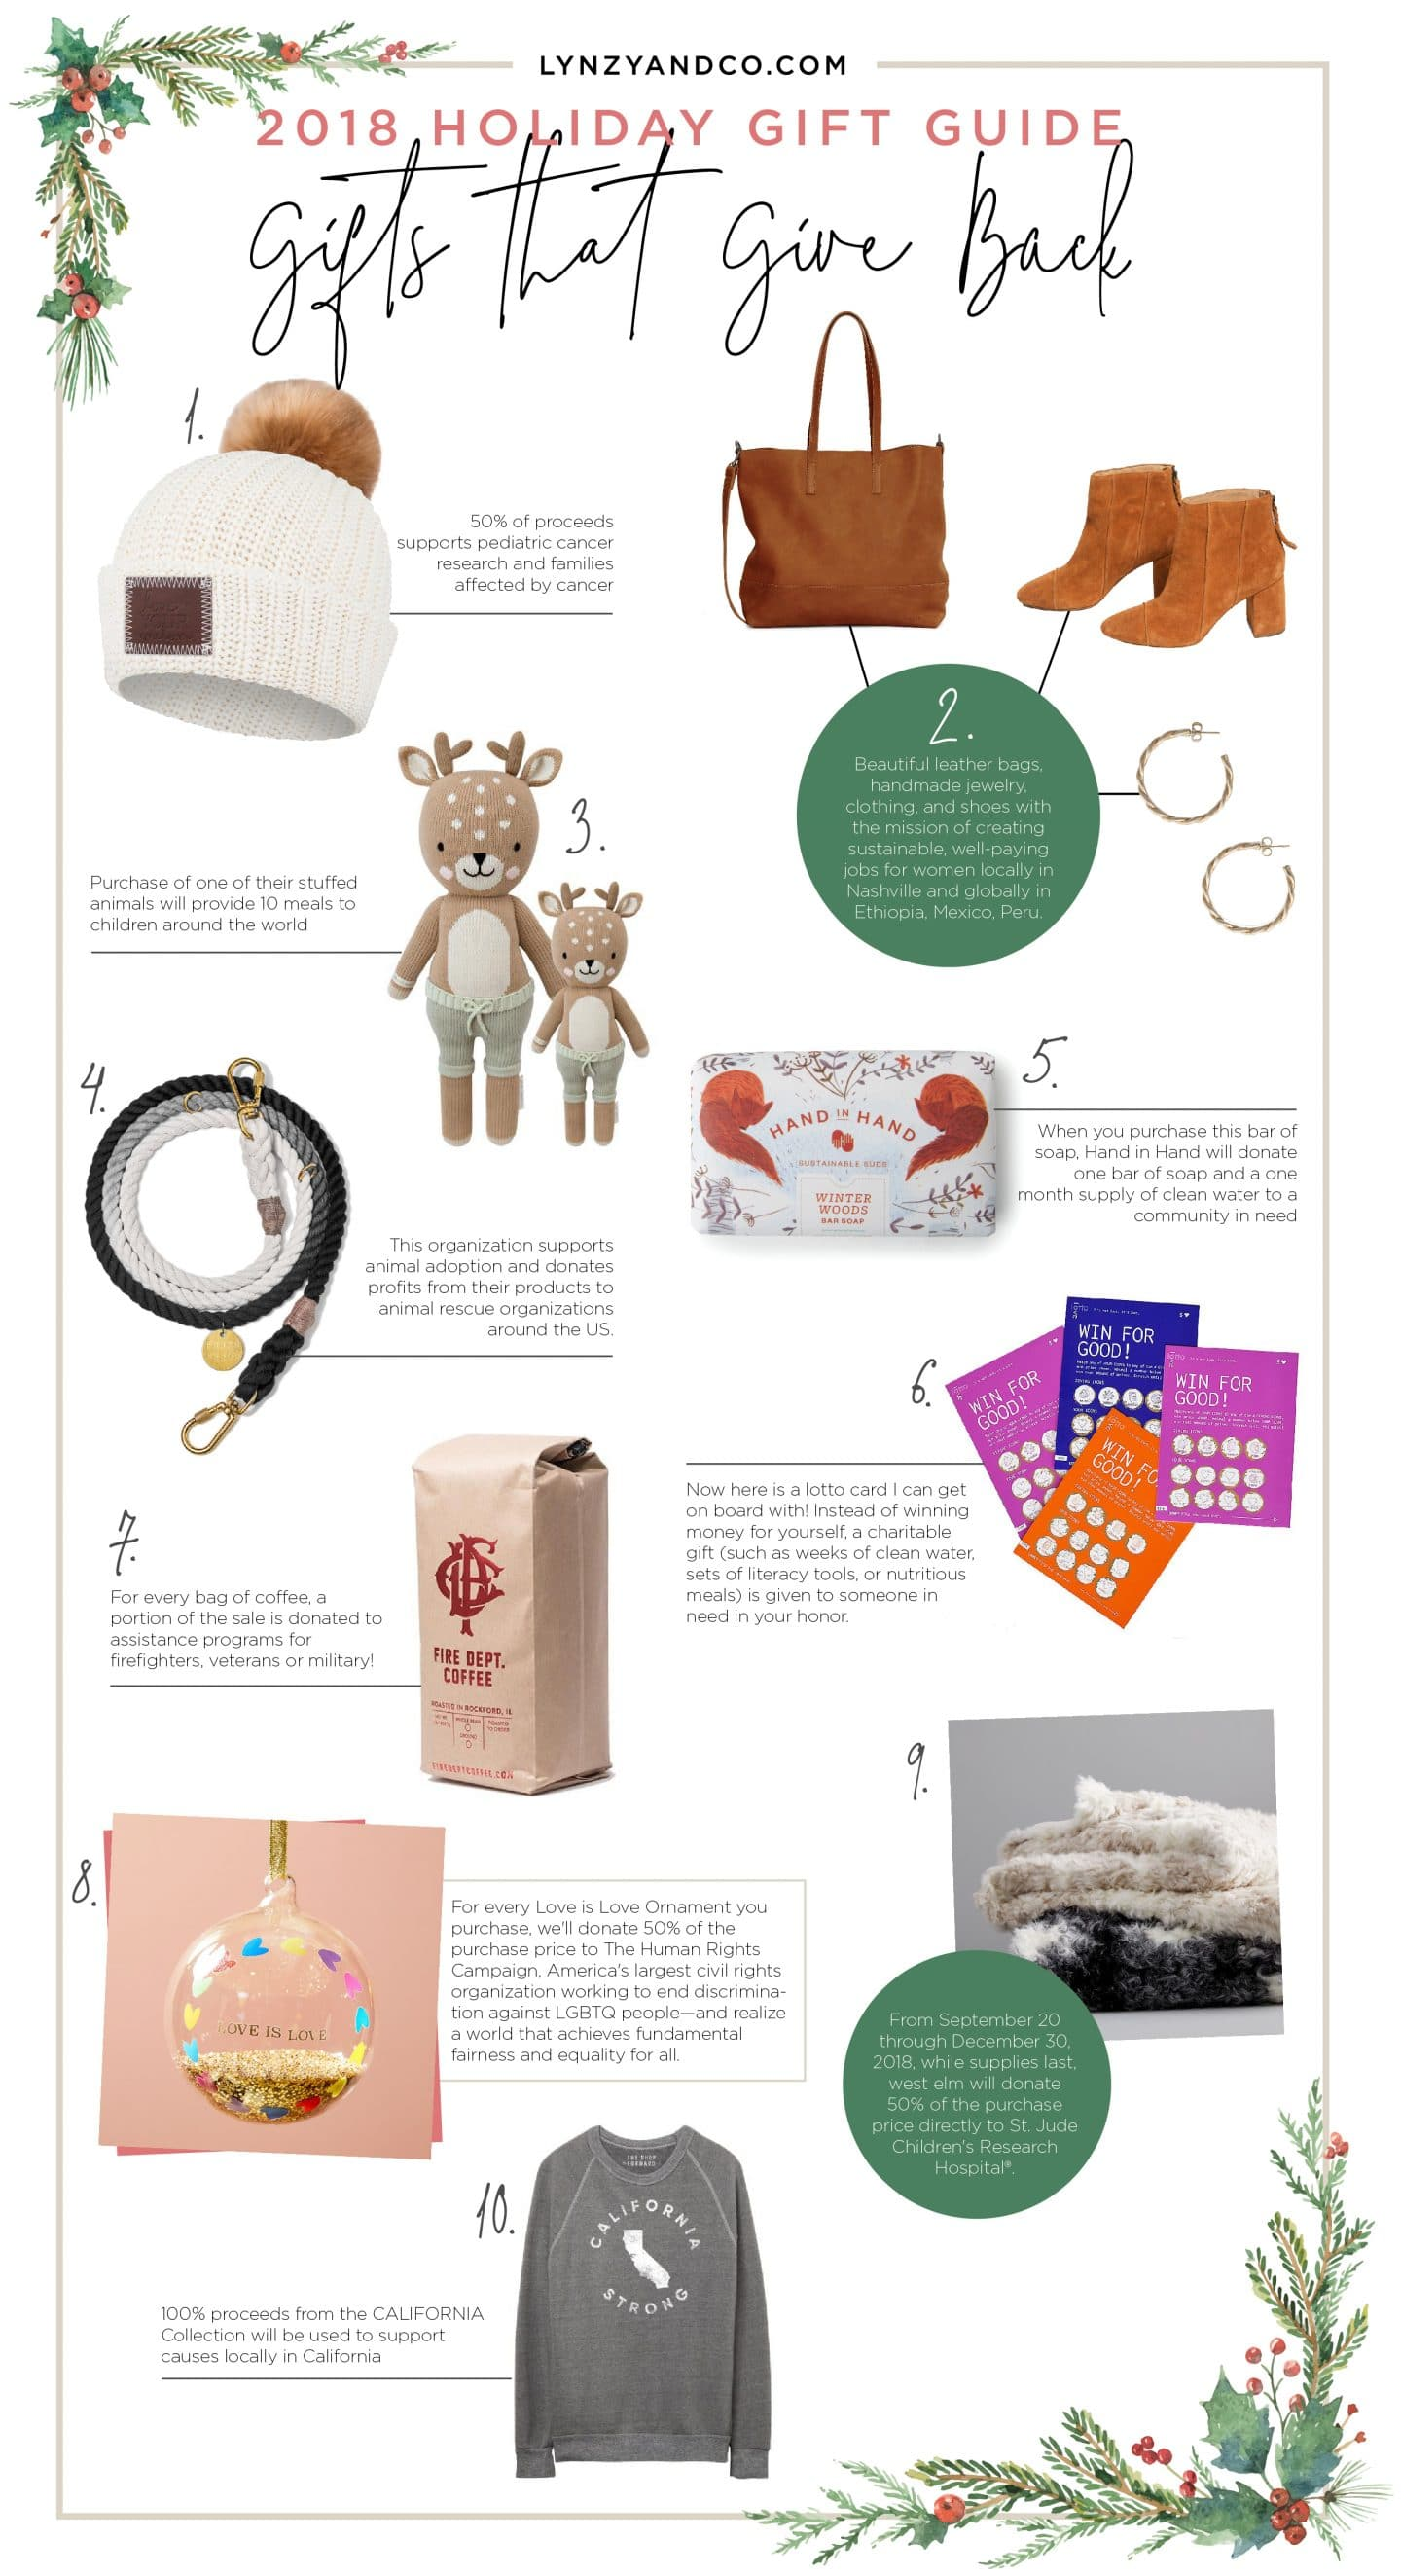 holiday gift guide gifts